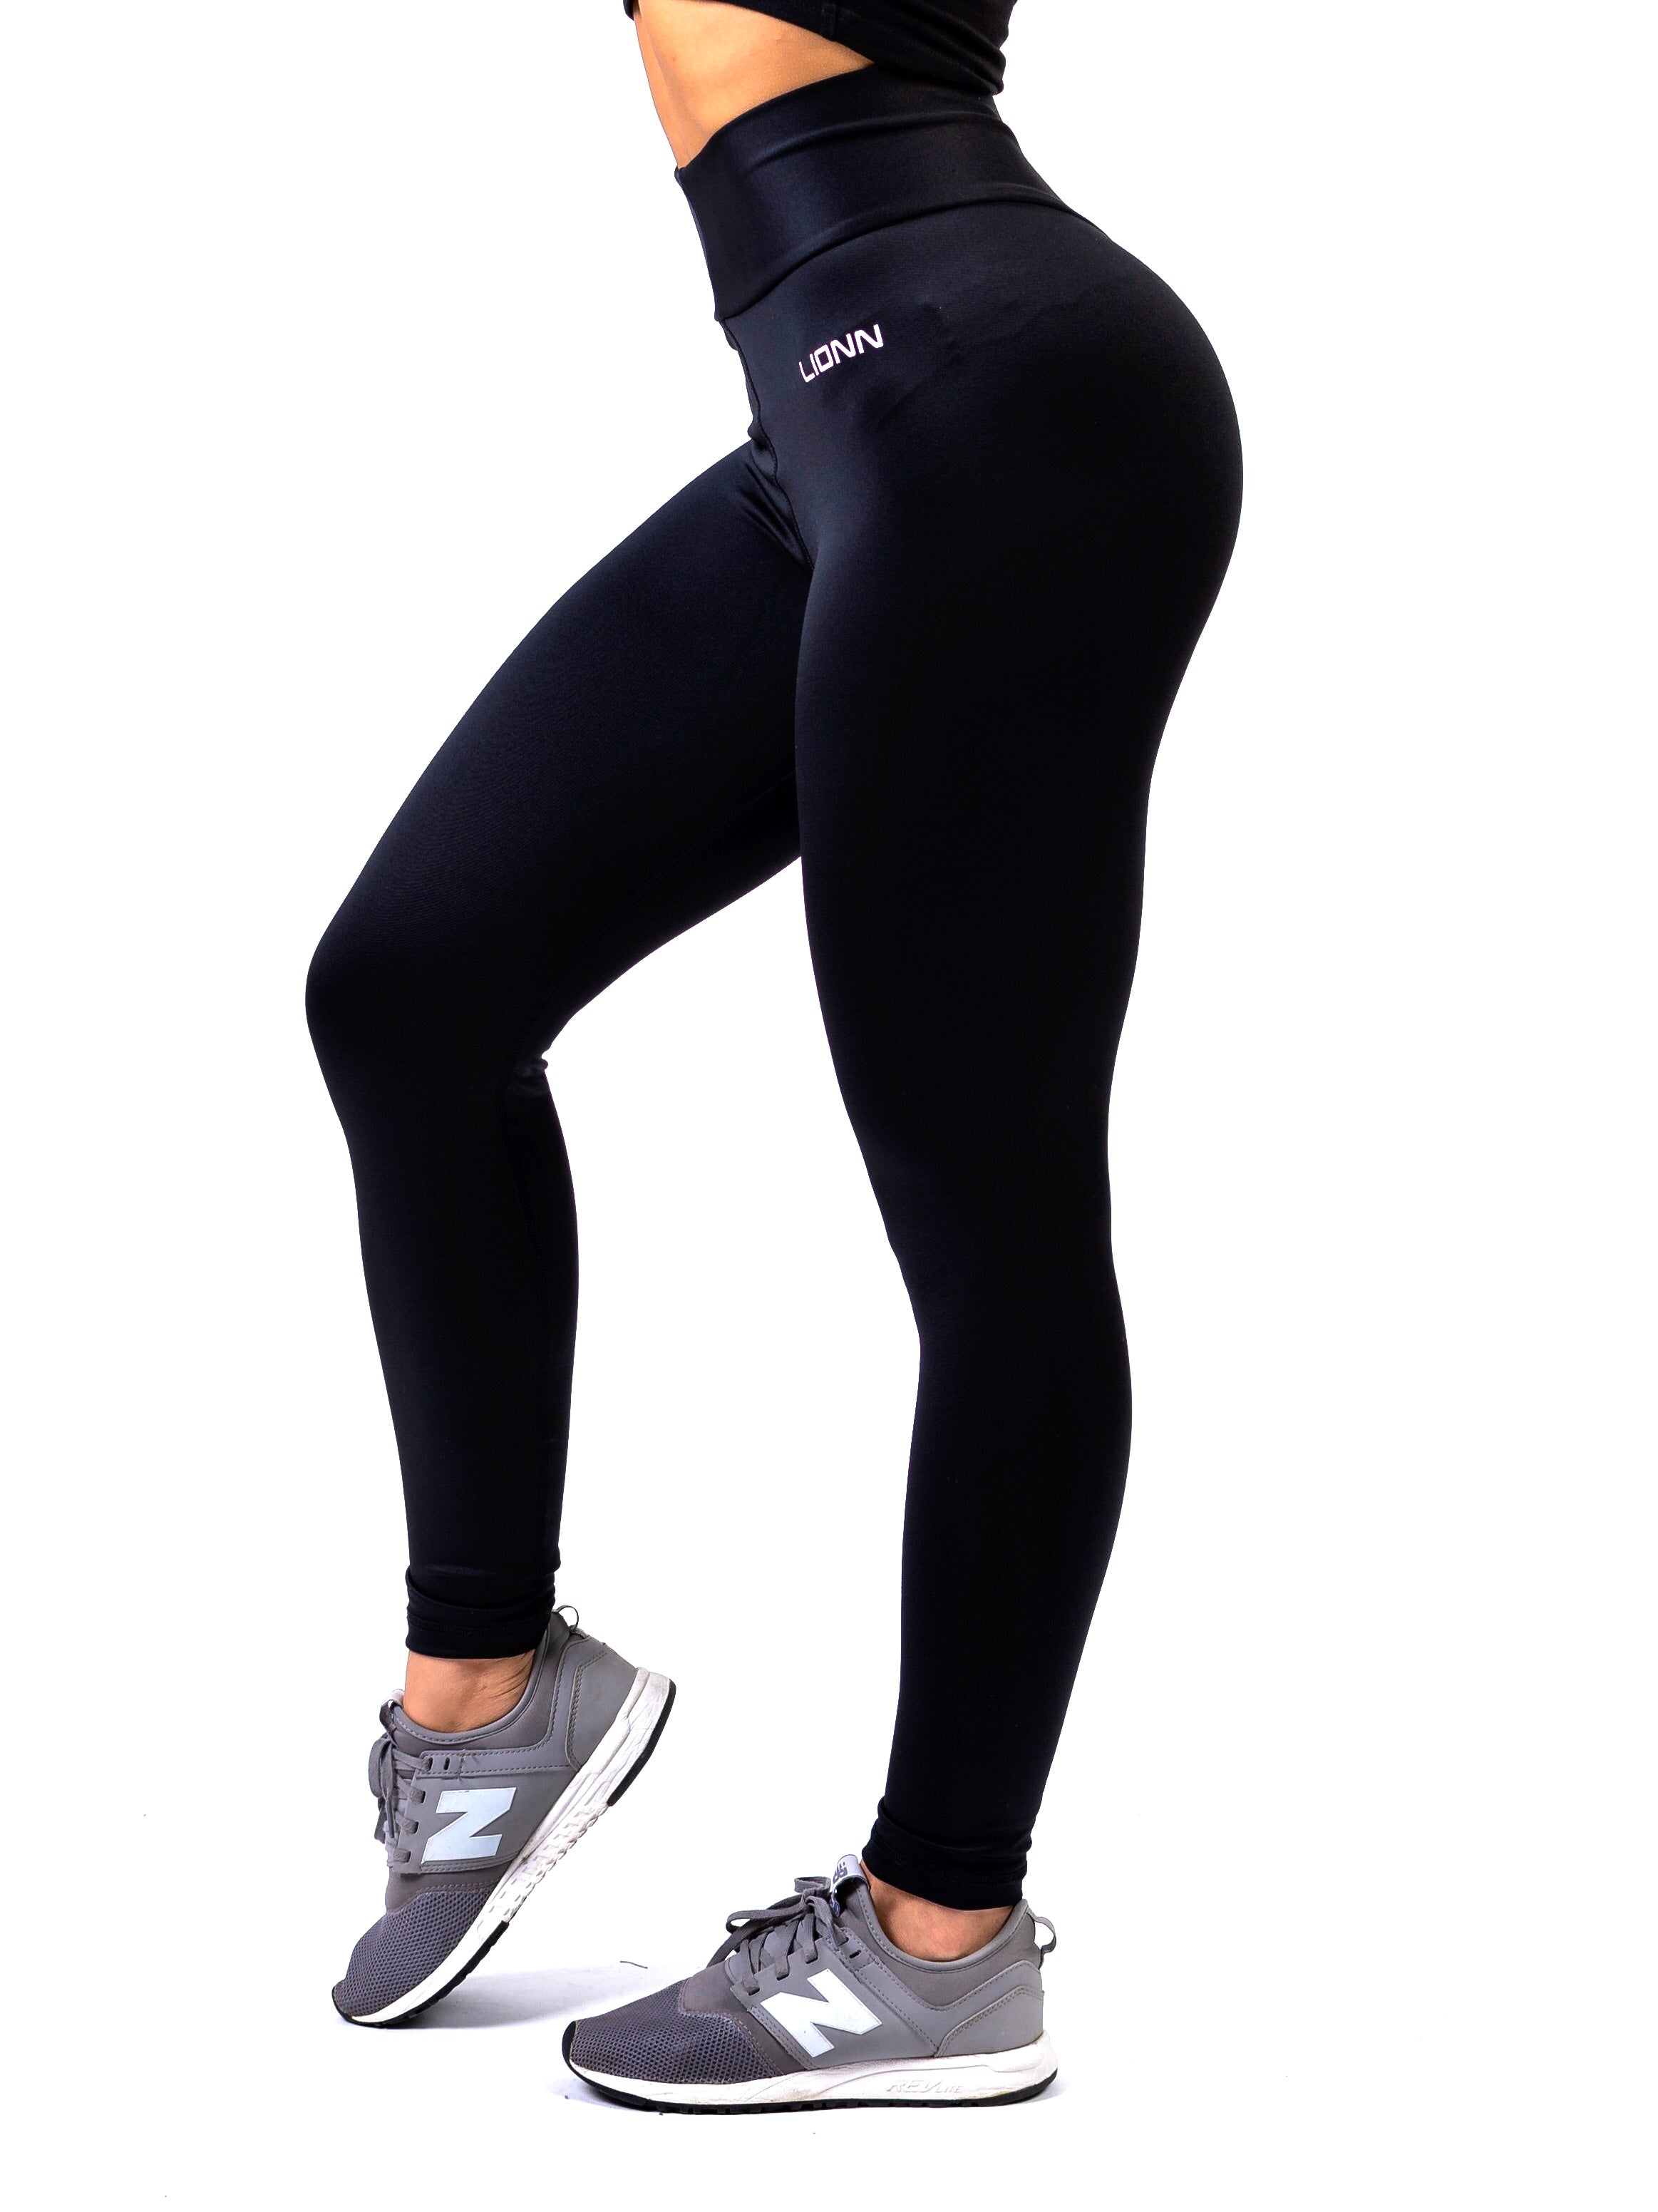 Lionn Ultra High Waisted Leggings Black